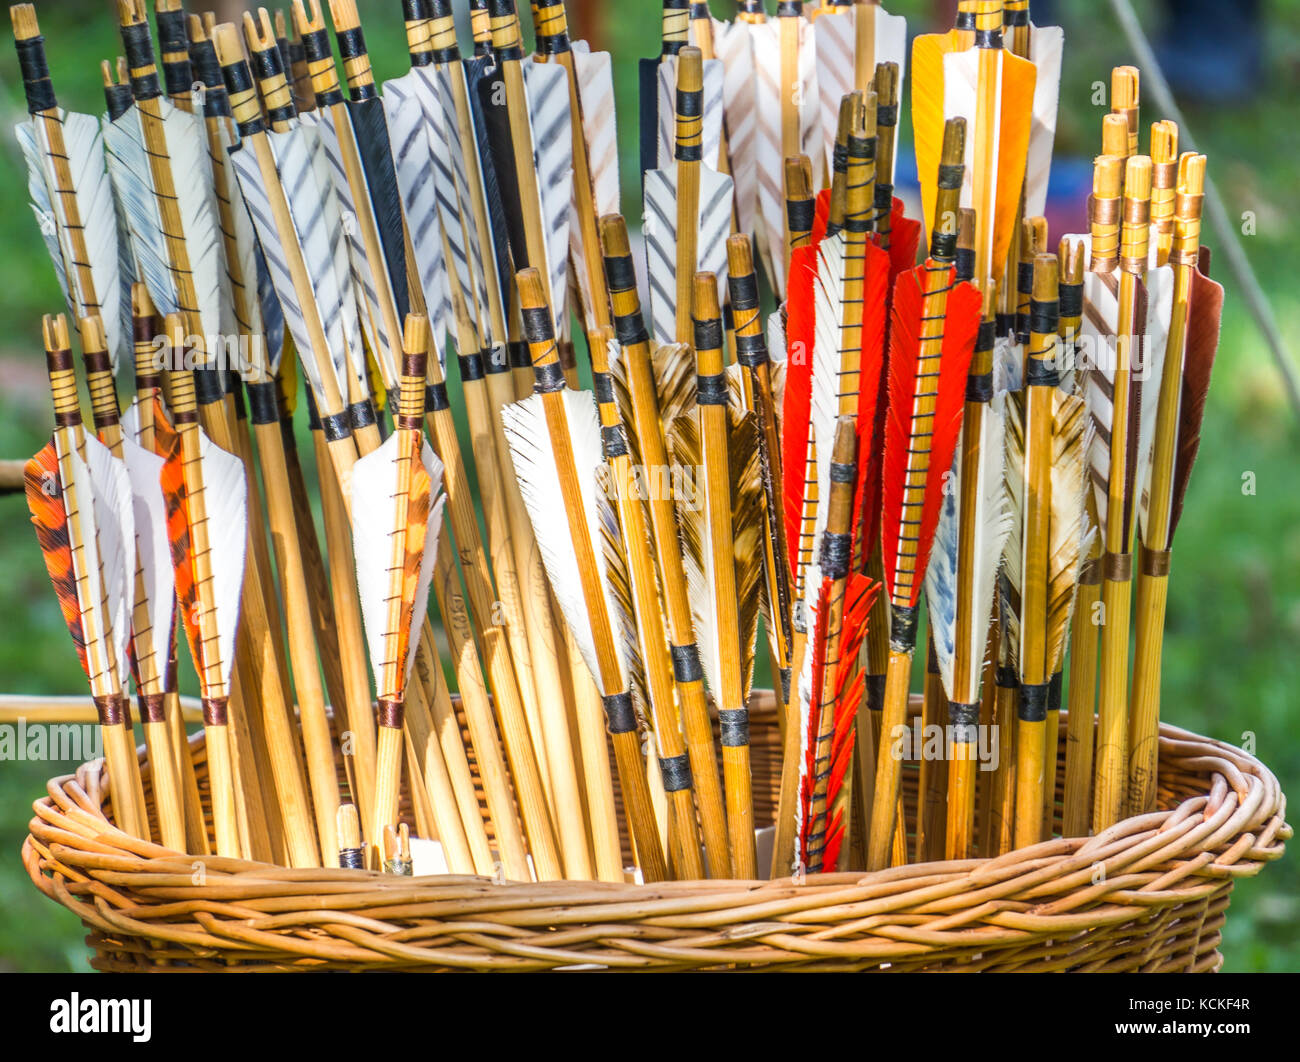 Ships of arrows for a bow in a plaited weasel basket, abstract shot - Stock Image